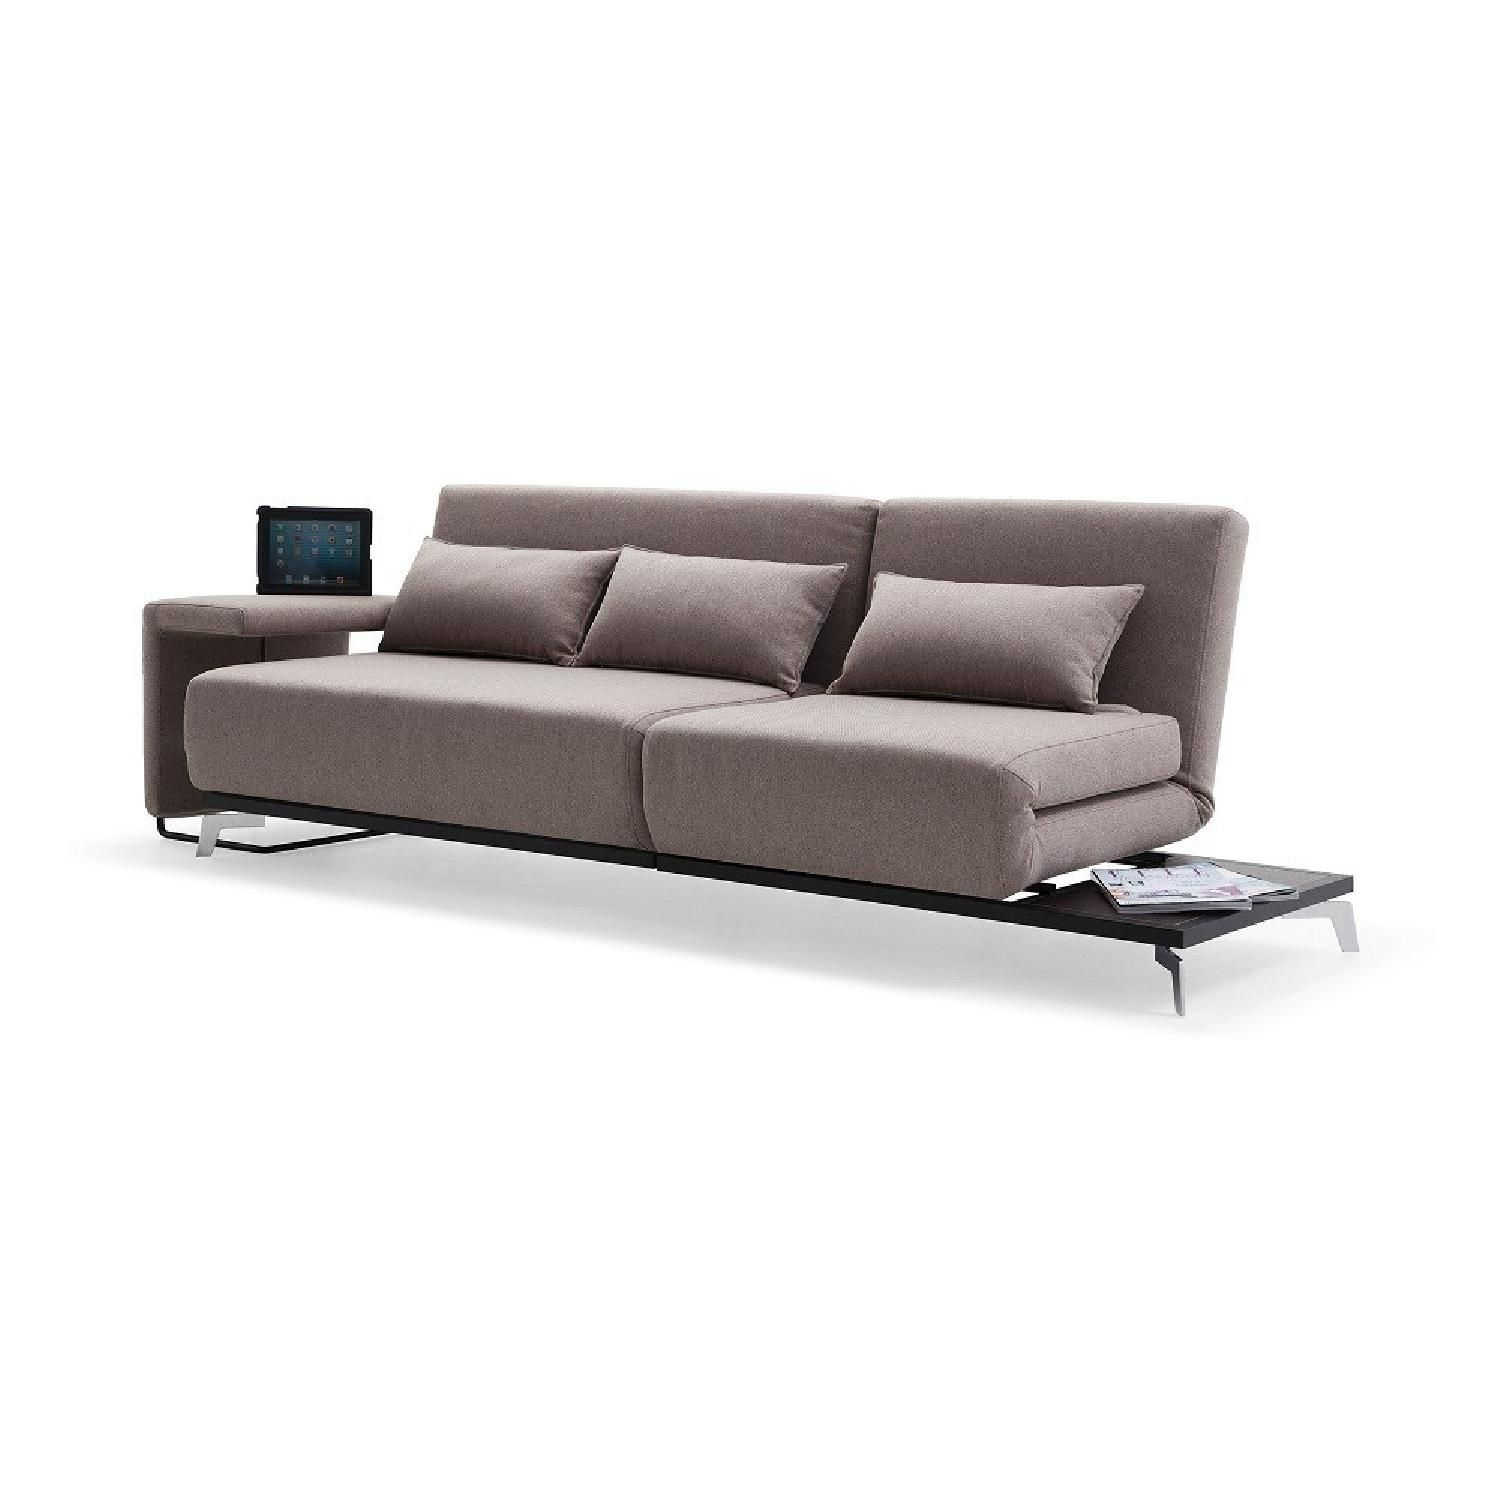 Modern Convertible Sleeper Sofa